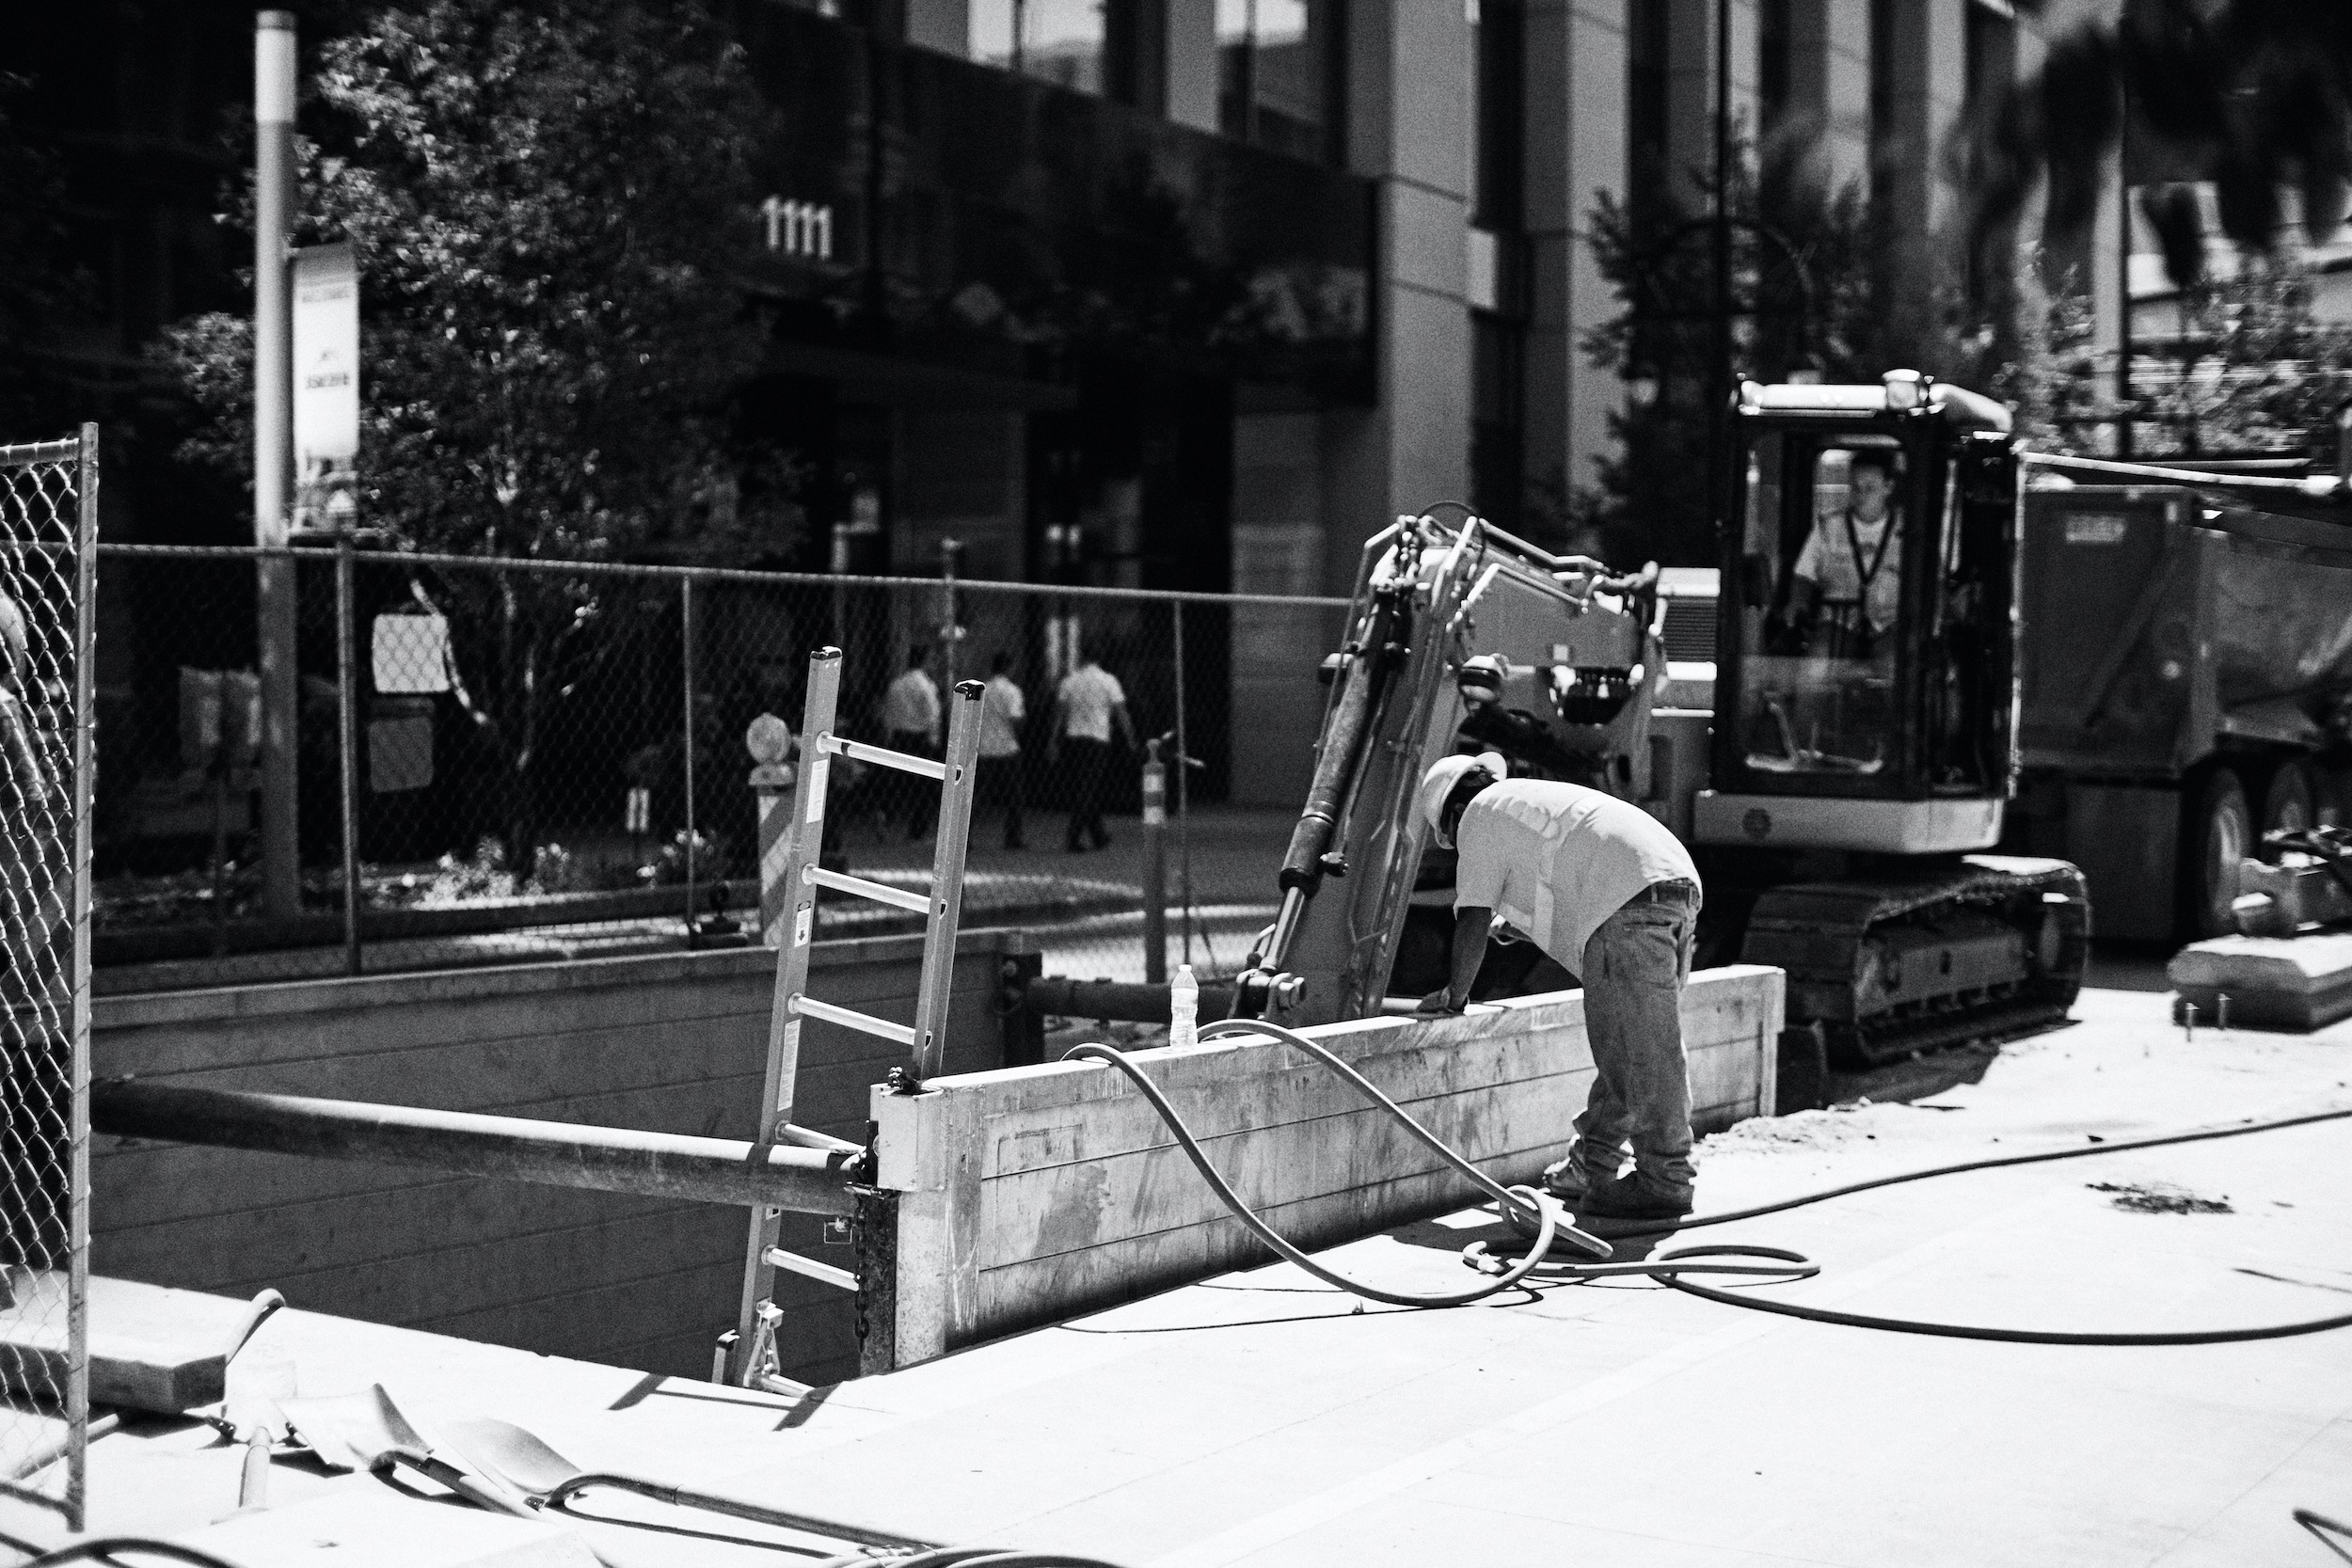 Denver Street Photography - 2.jpeg